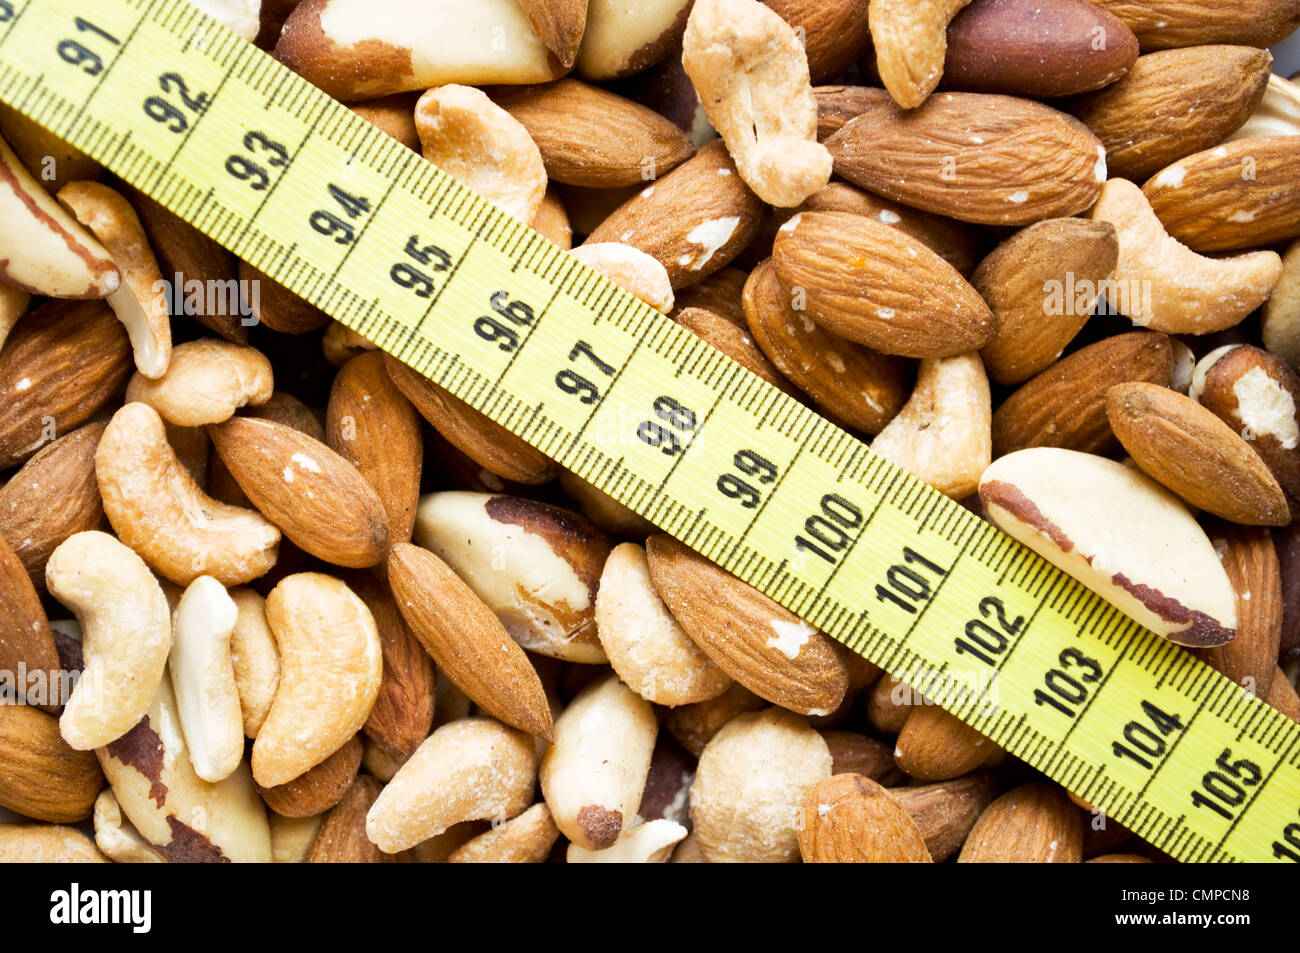 Nuts and measure tape - Stock Image